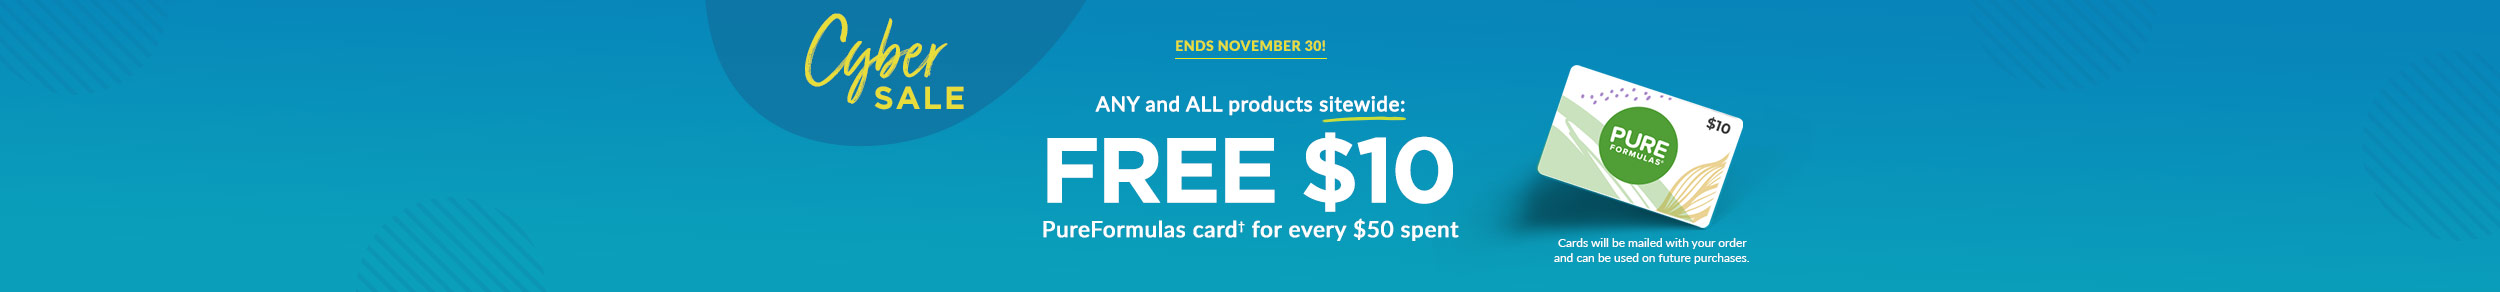 CYBER SALE - ENDS NOVEMBER 30! ANY and ALL products sitewide: FREE $10 PureFormulas card for every $50 spent! Cards will be mailed with your order.